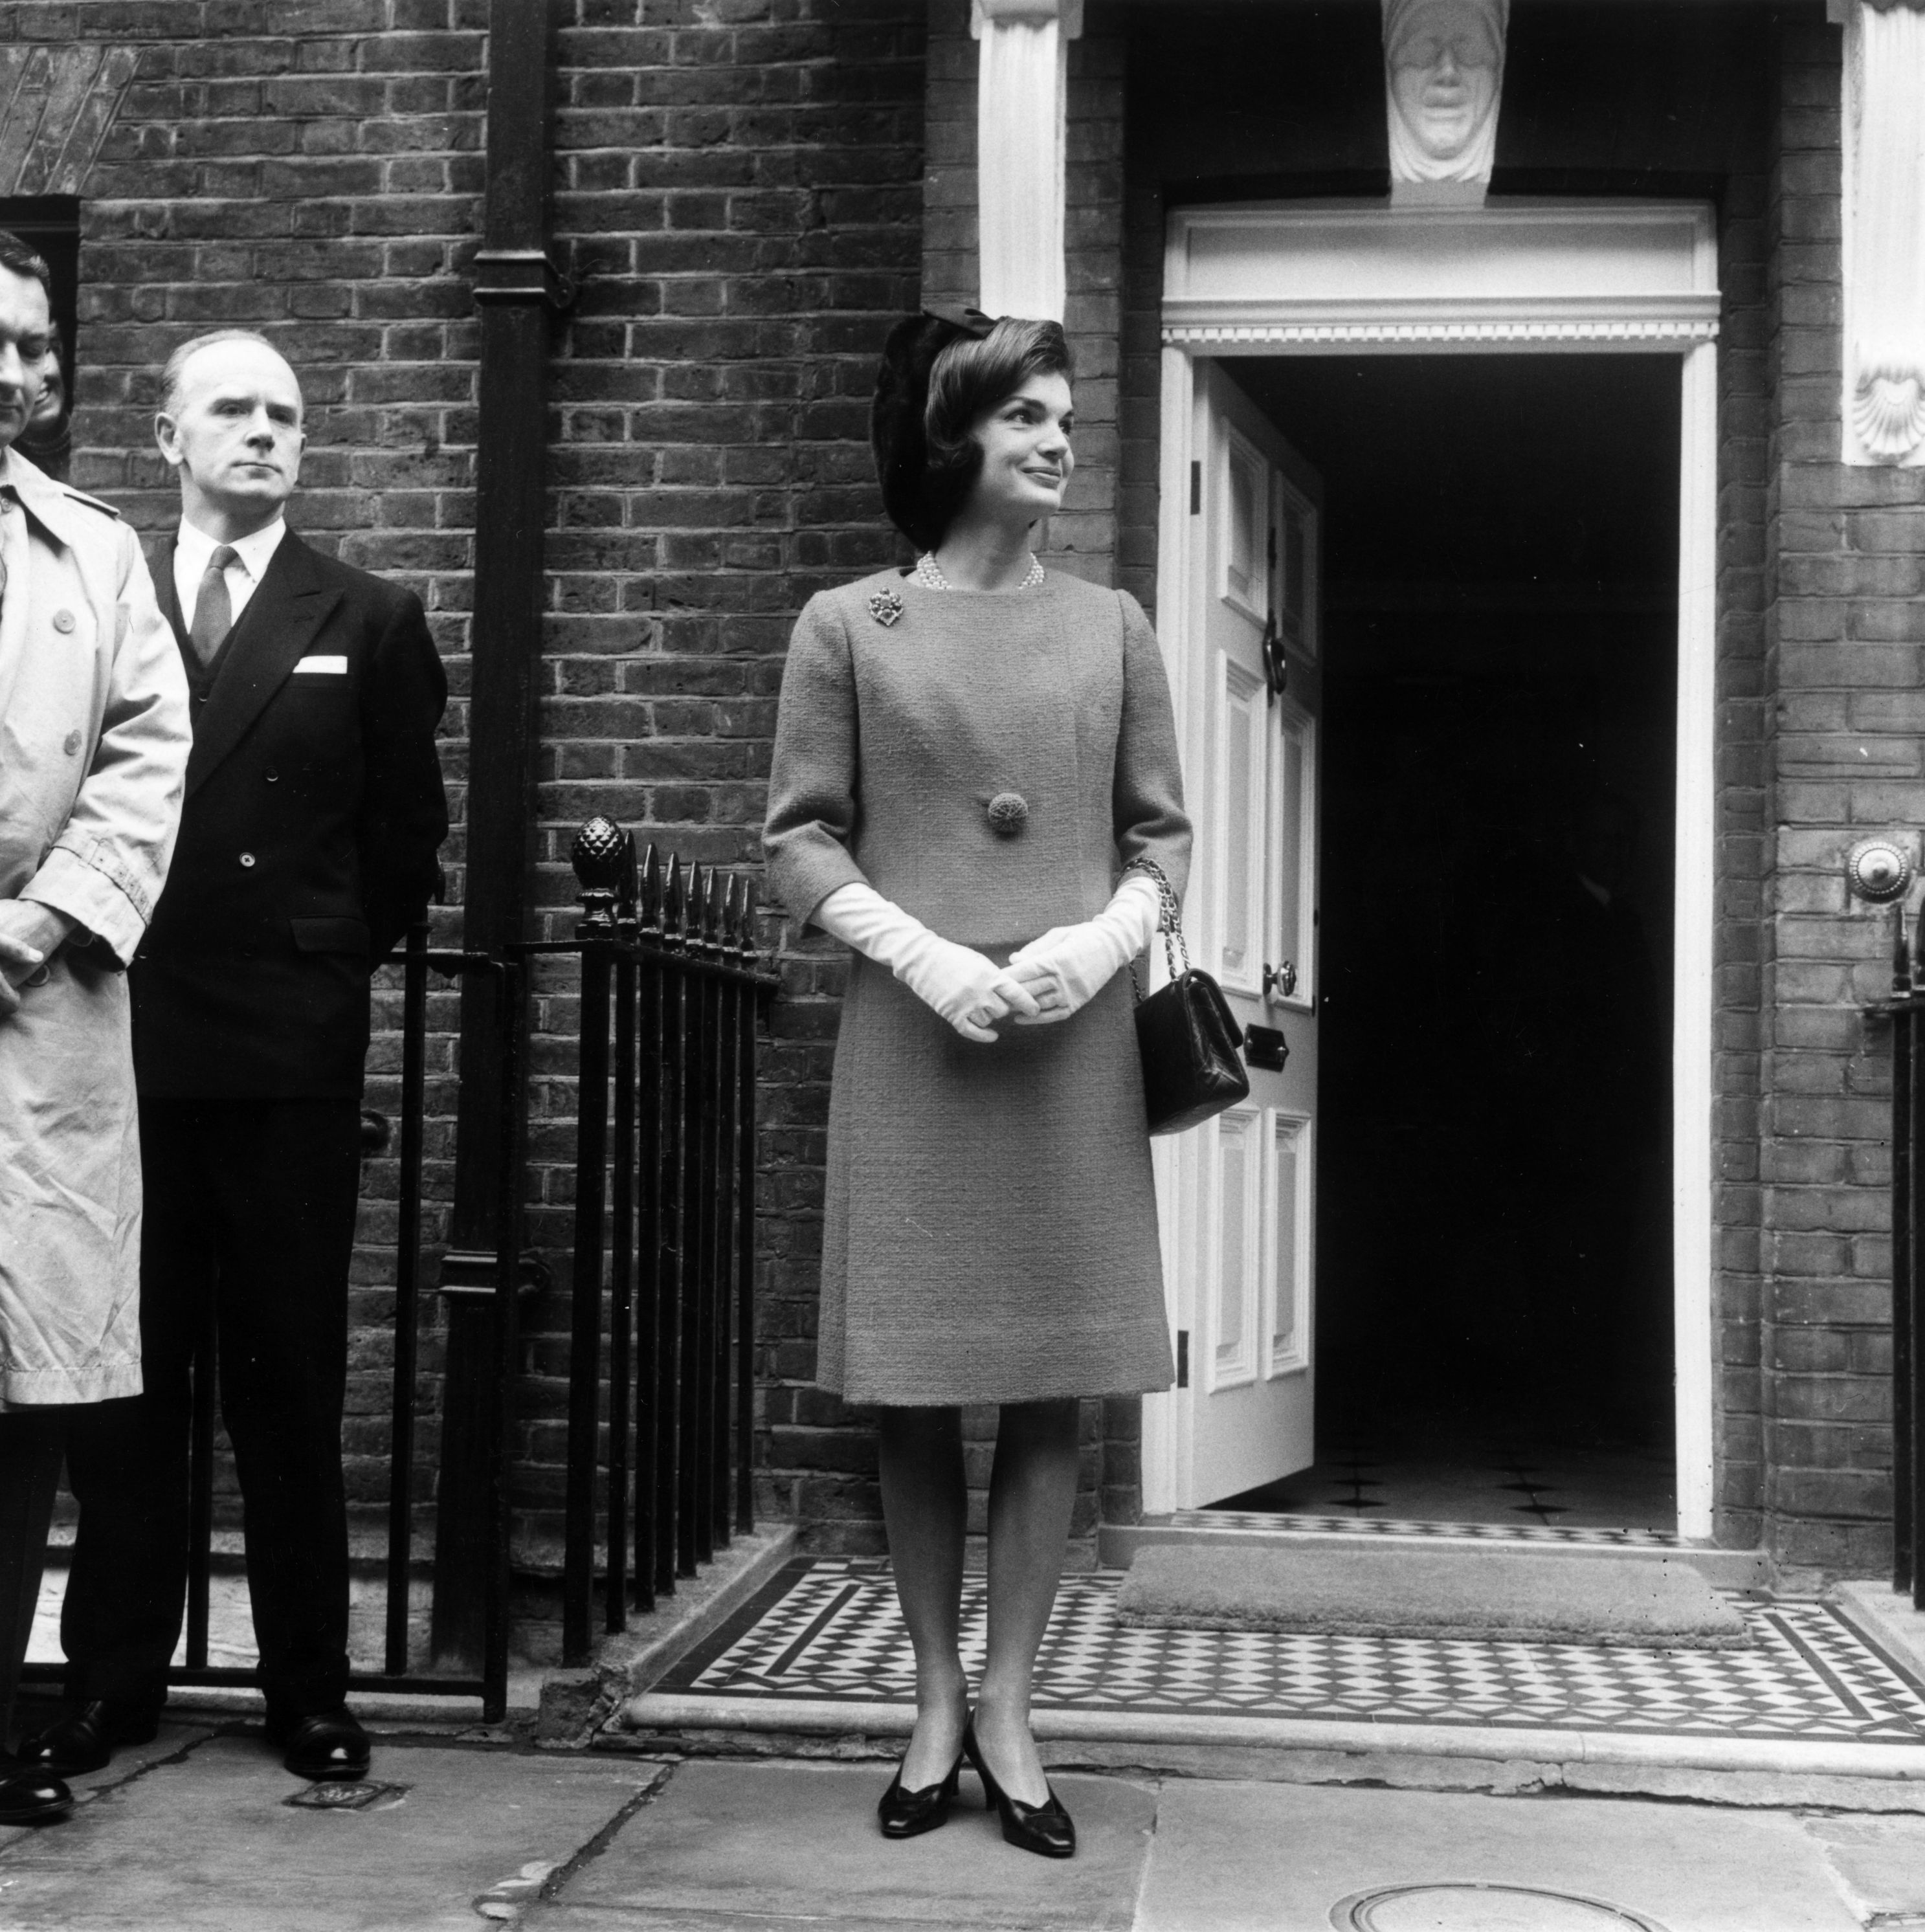 Then Jackie Kennedy, leaving for lunch with Queen Elizabeth II of Great Britain April 3, 1962. (Photo by Evening Standard/Getty Images)